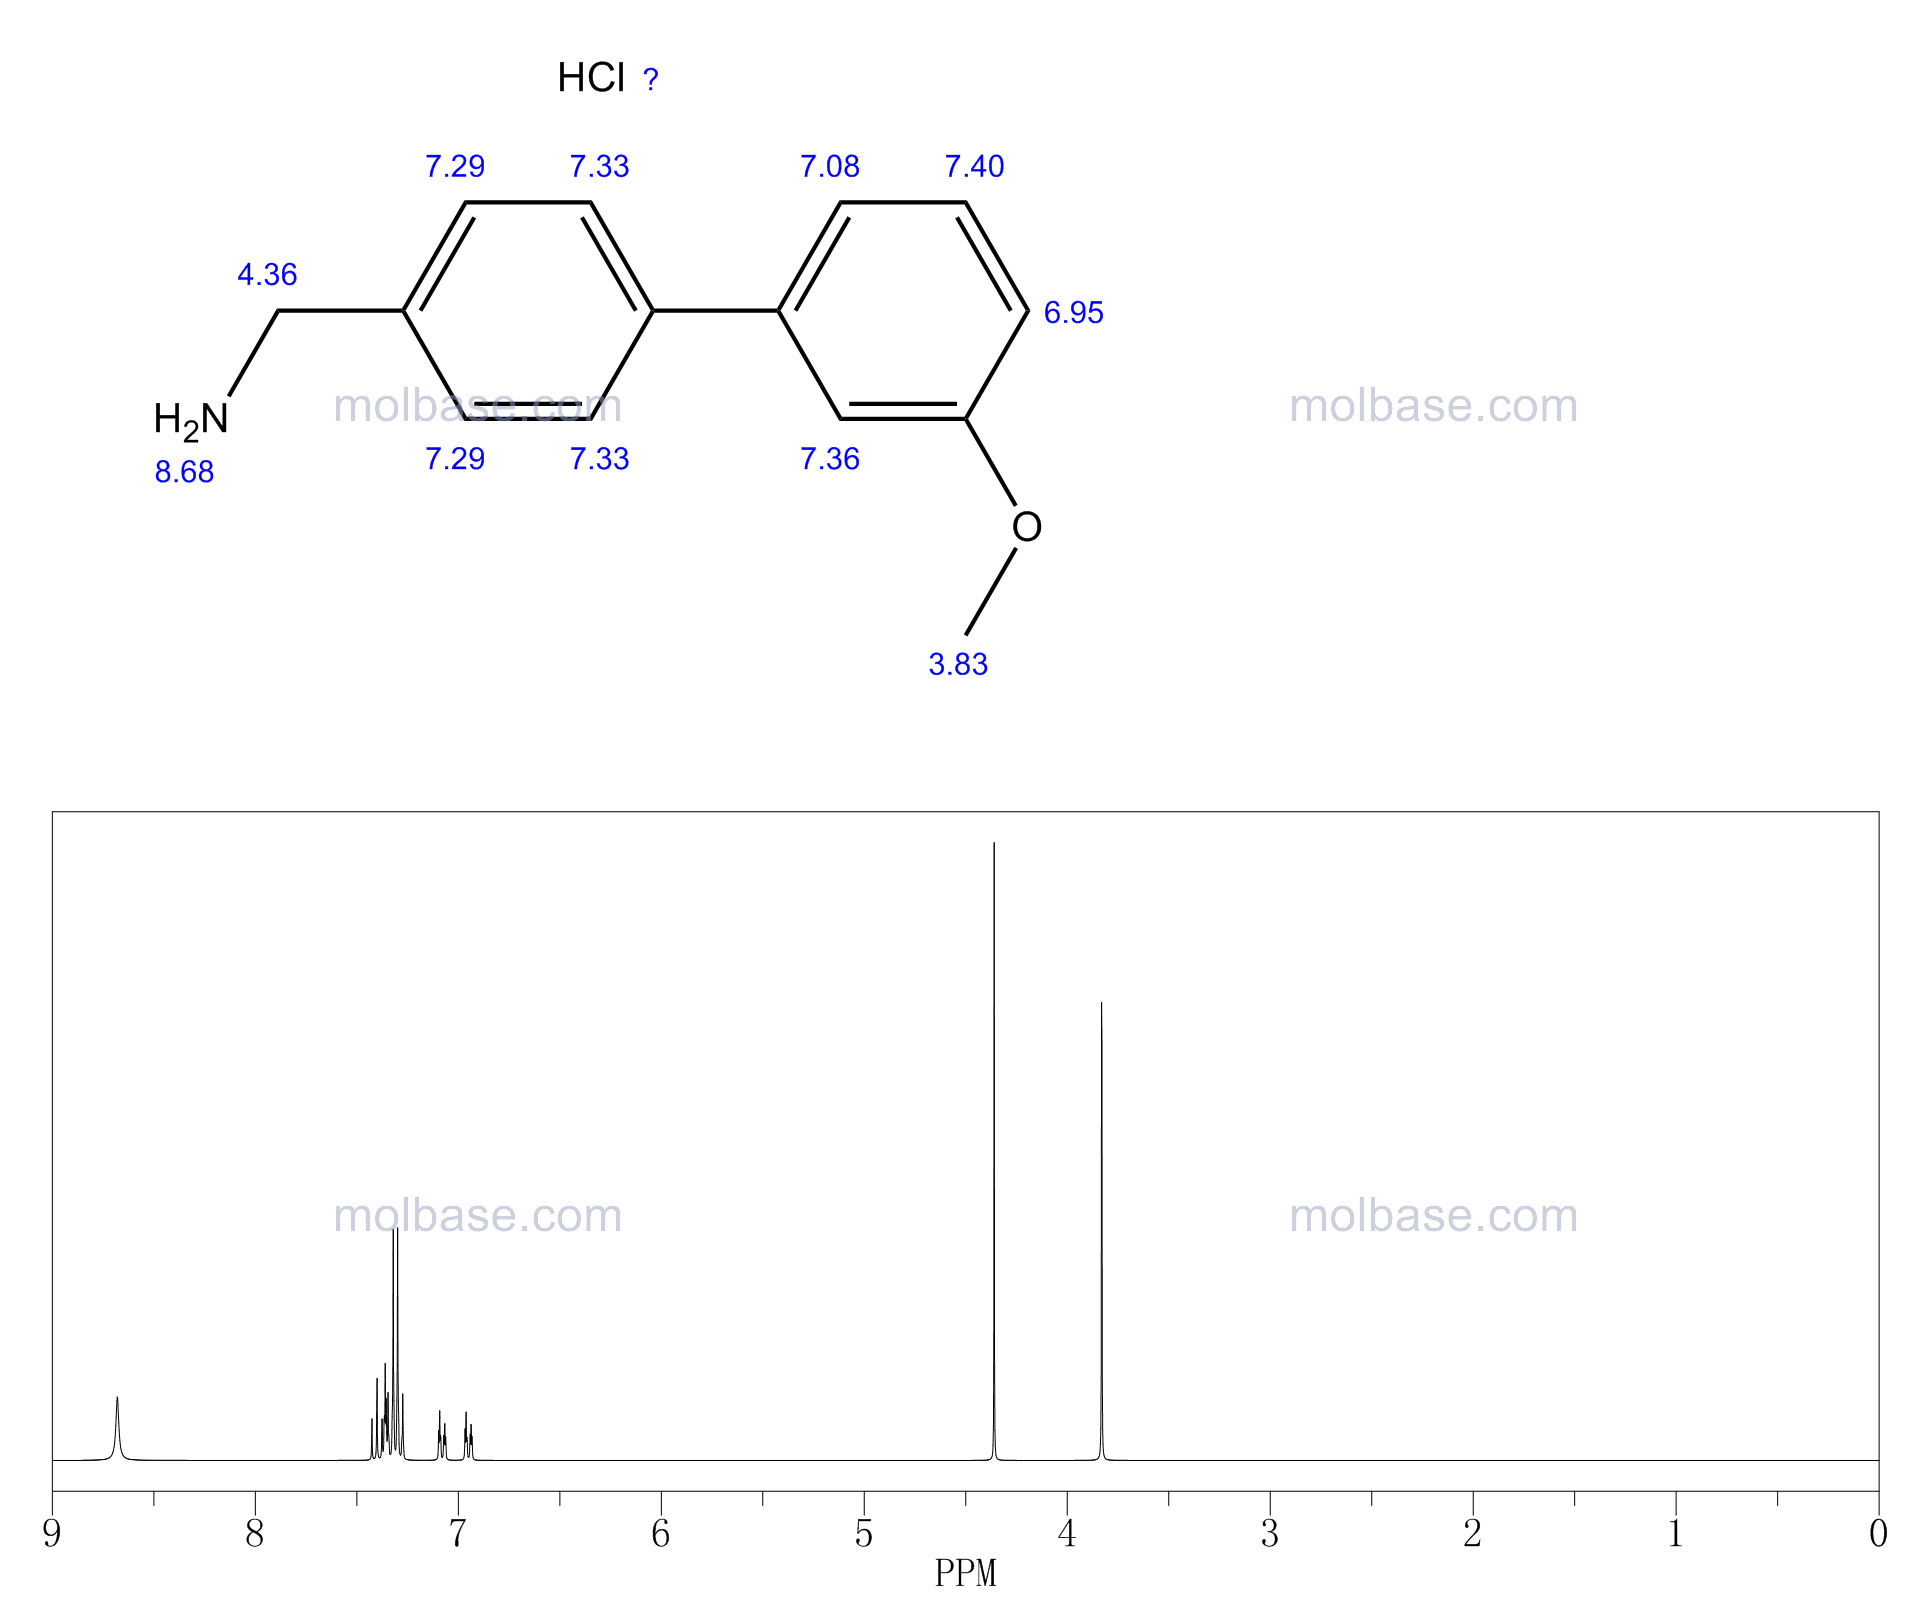 C-(3'-METHOXY-BIPHENYL-4-YL)-METHYLAMINE HYDROCHLORIDE NMR spectra analysis, Chemical CAS NO. 858674-00-7 NMR spectral analysis, C-(3'-METHOXY-BIPHENYL-4-YL)-METHYLAMINE HYDROCHLORIDE C-NMR spectrum